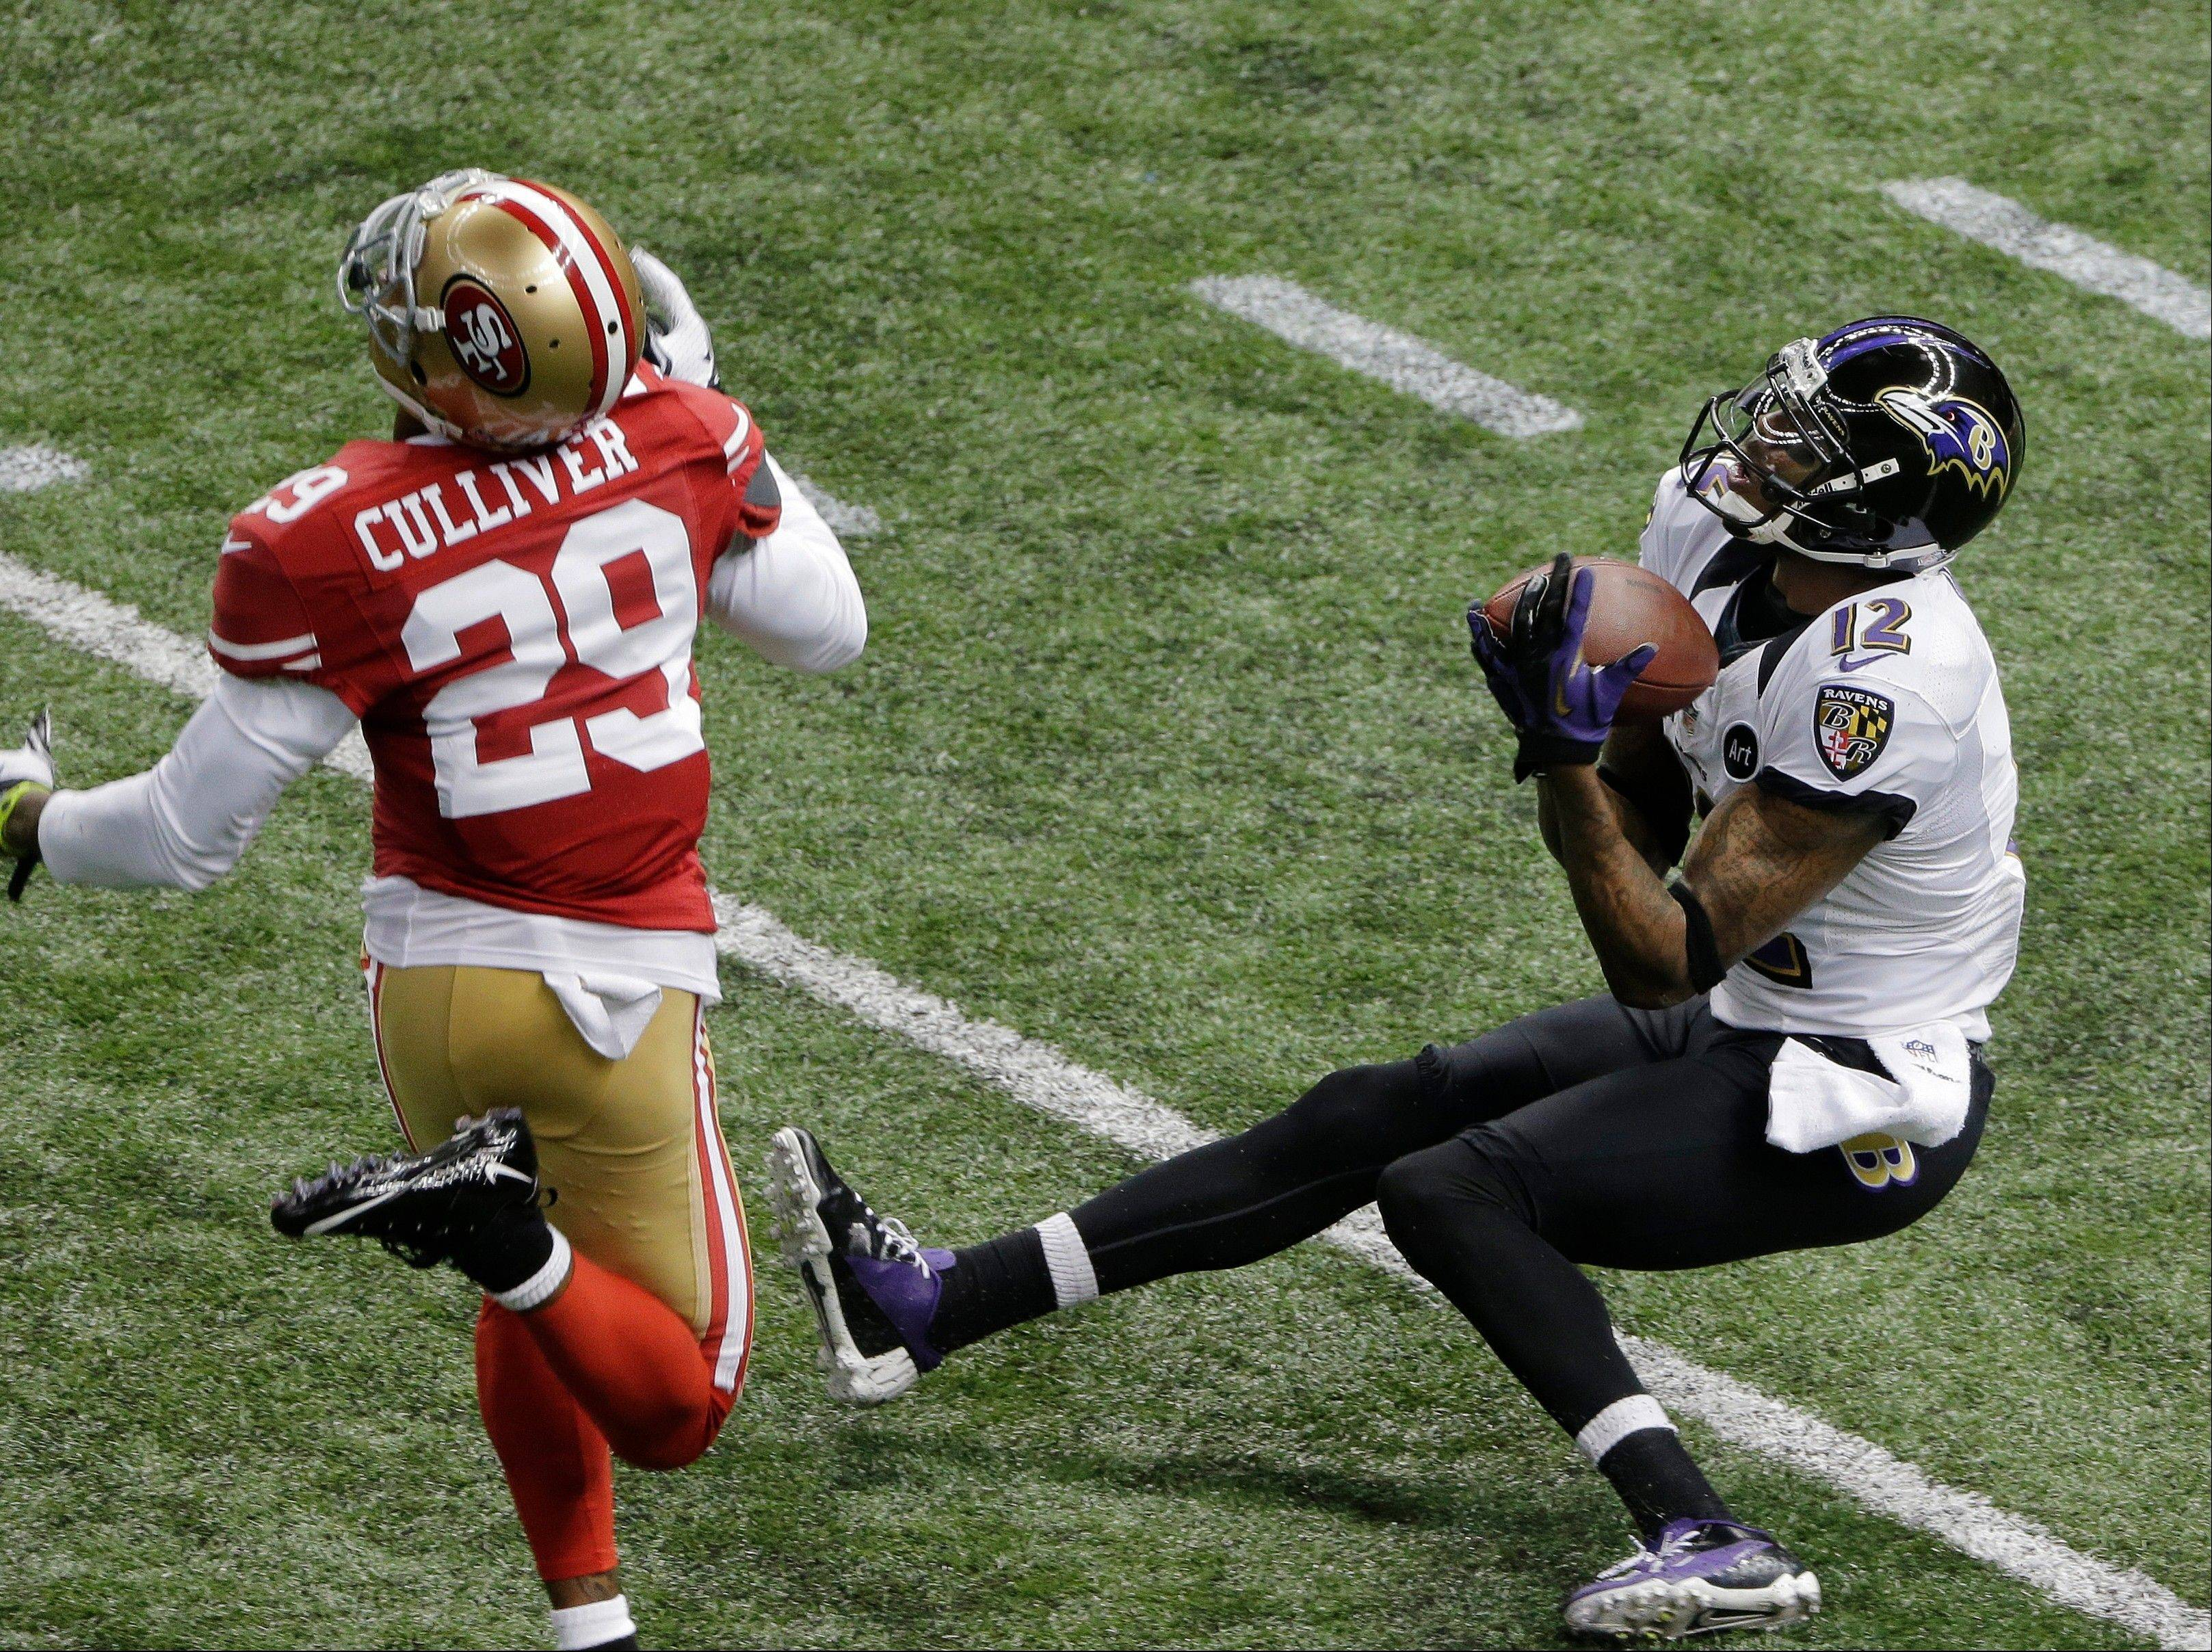 Baltimore Ravens wide receiver Jacoby Jones (12) catches a pass in front of San Francisco 49ers defensive back Chris Culliver (29) during the first half.